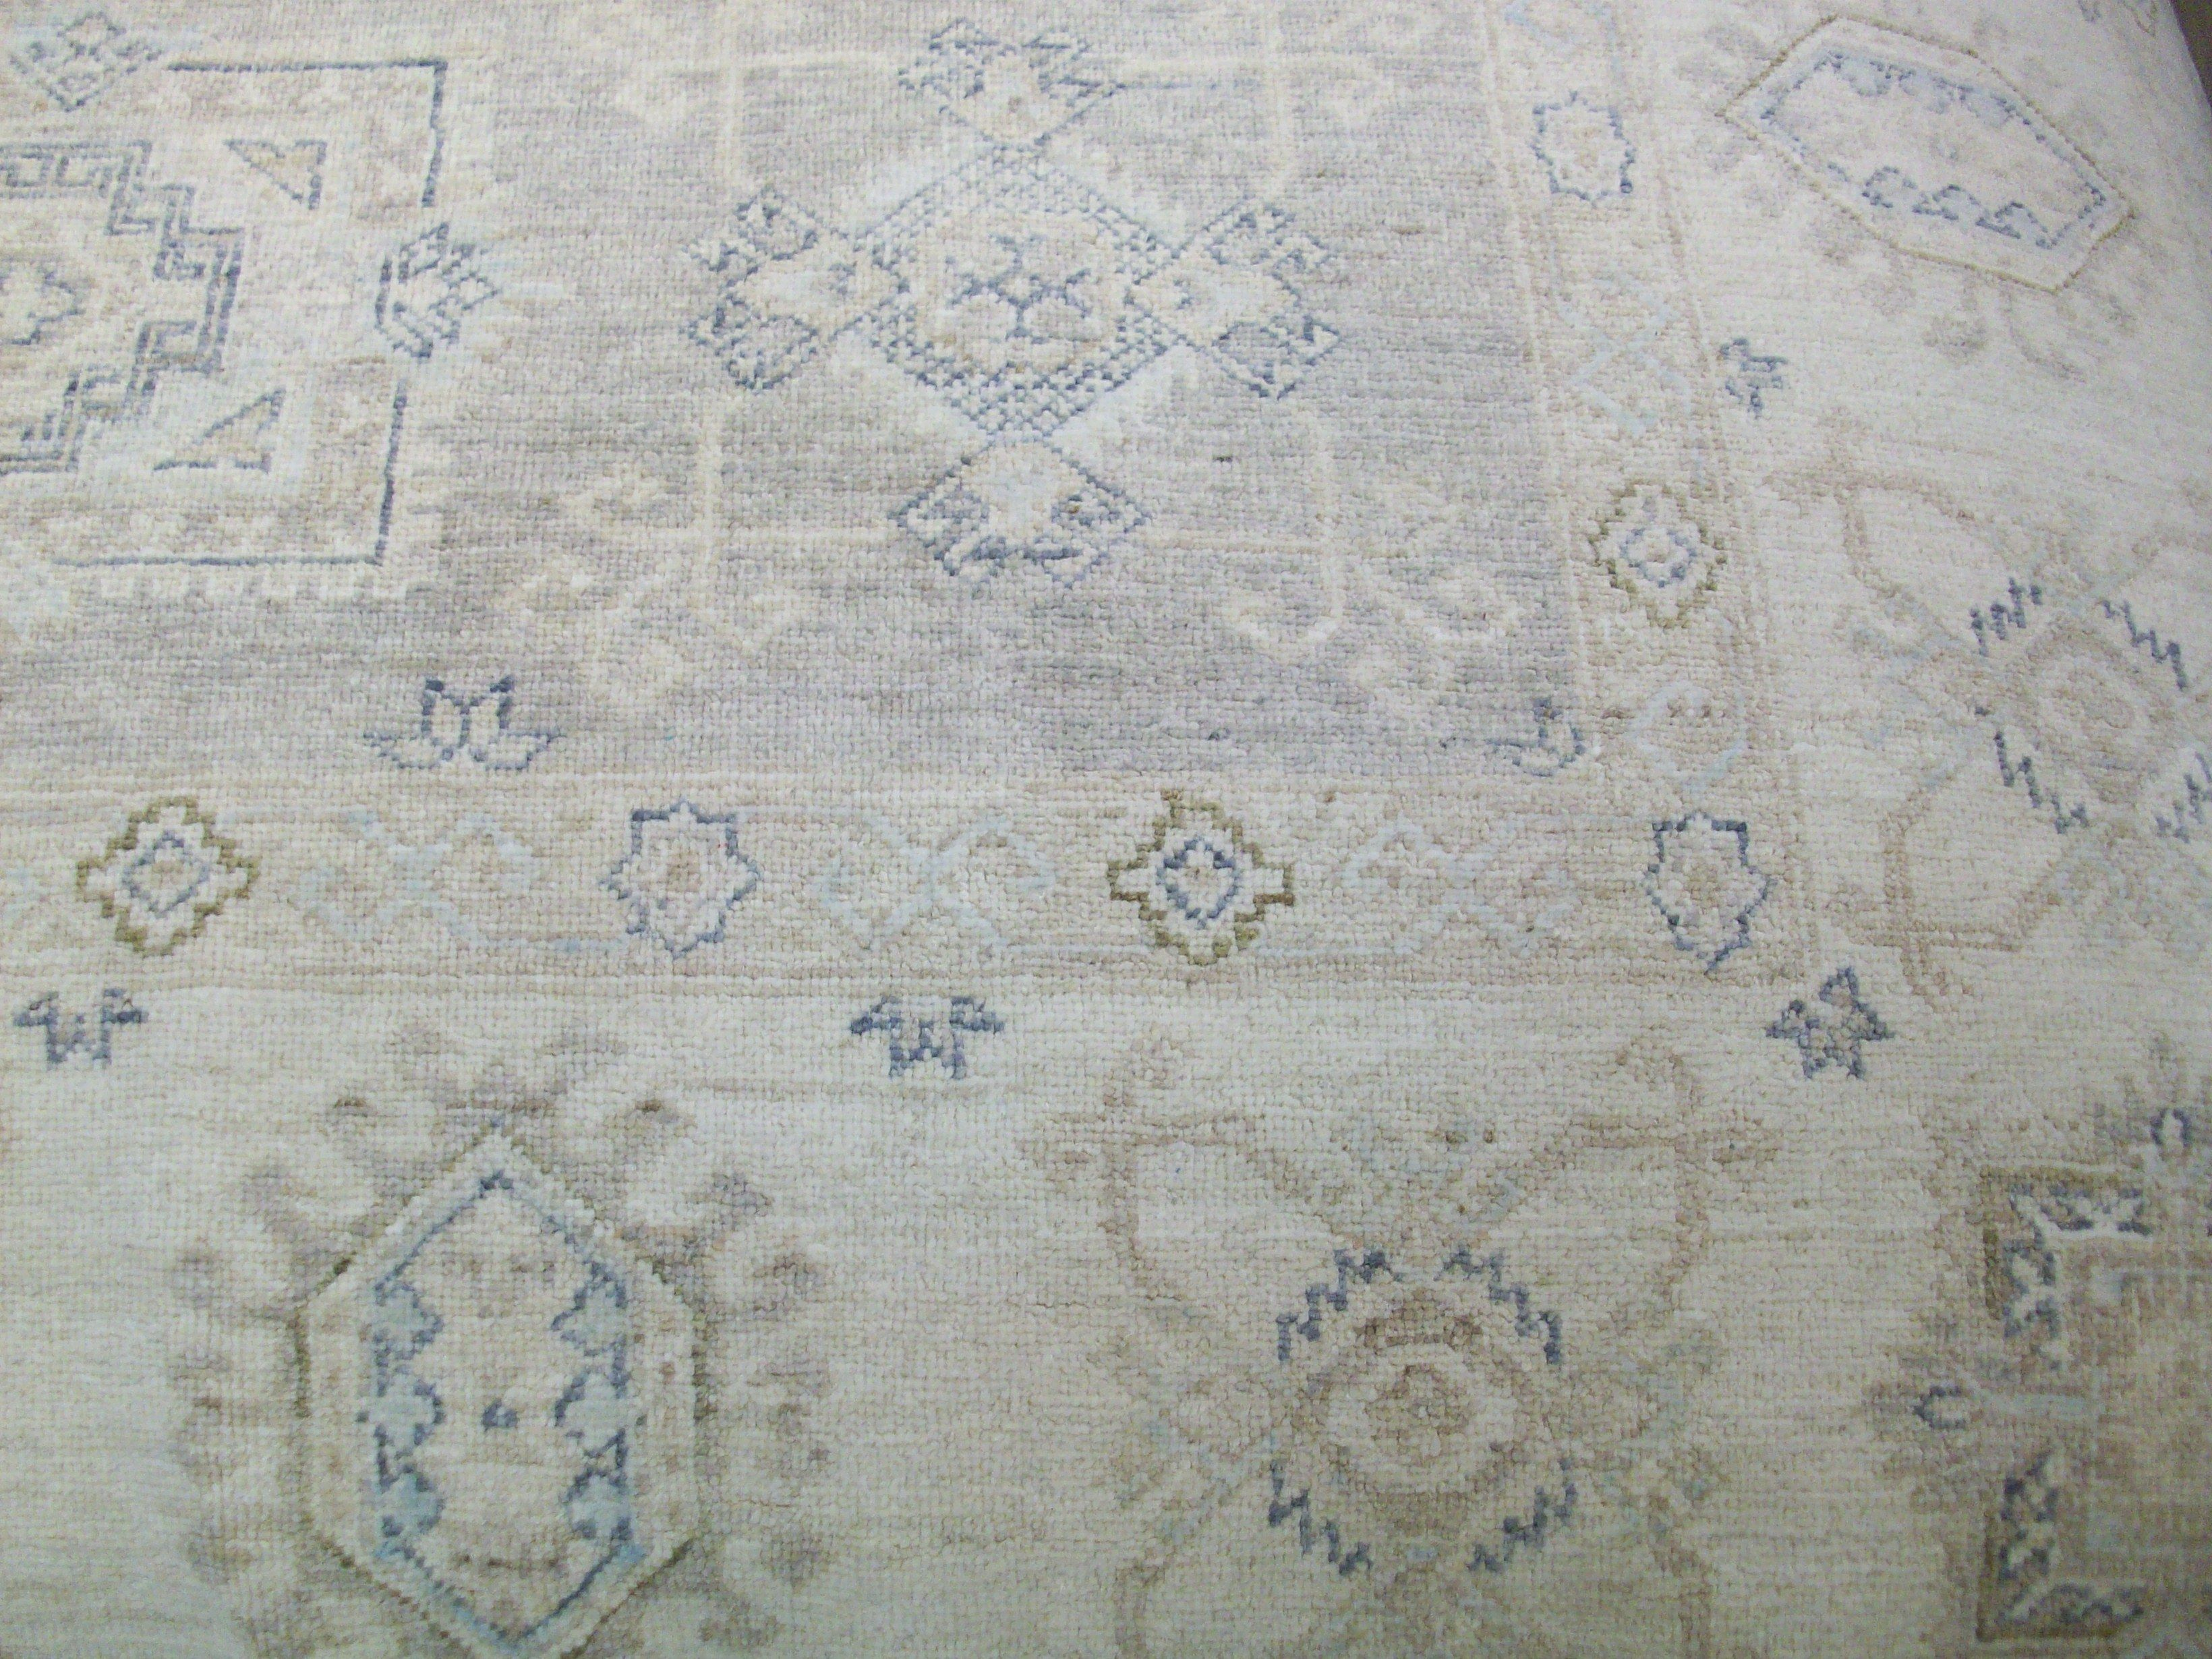 100 Wool Hand Knotted Rug Geometric Design Ivory Blue Tan Beige Light Blue Navy Rugs Rug Store 8x10 Rugs